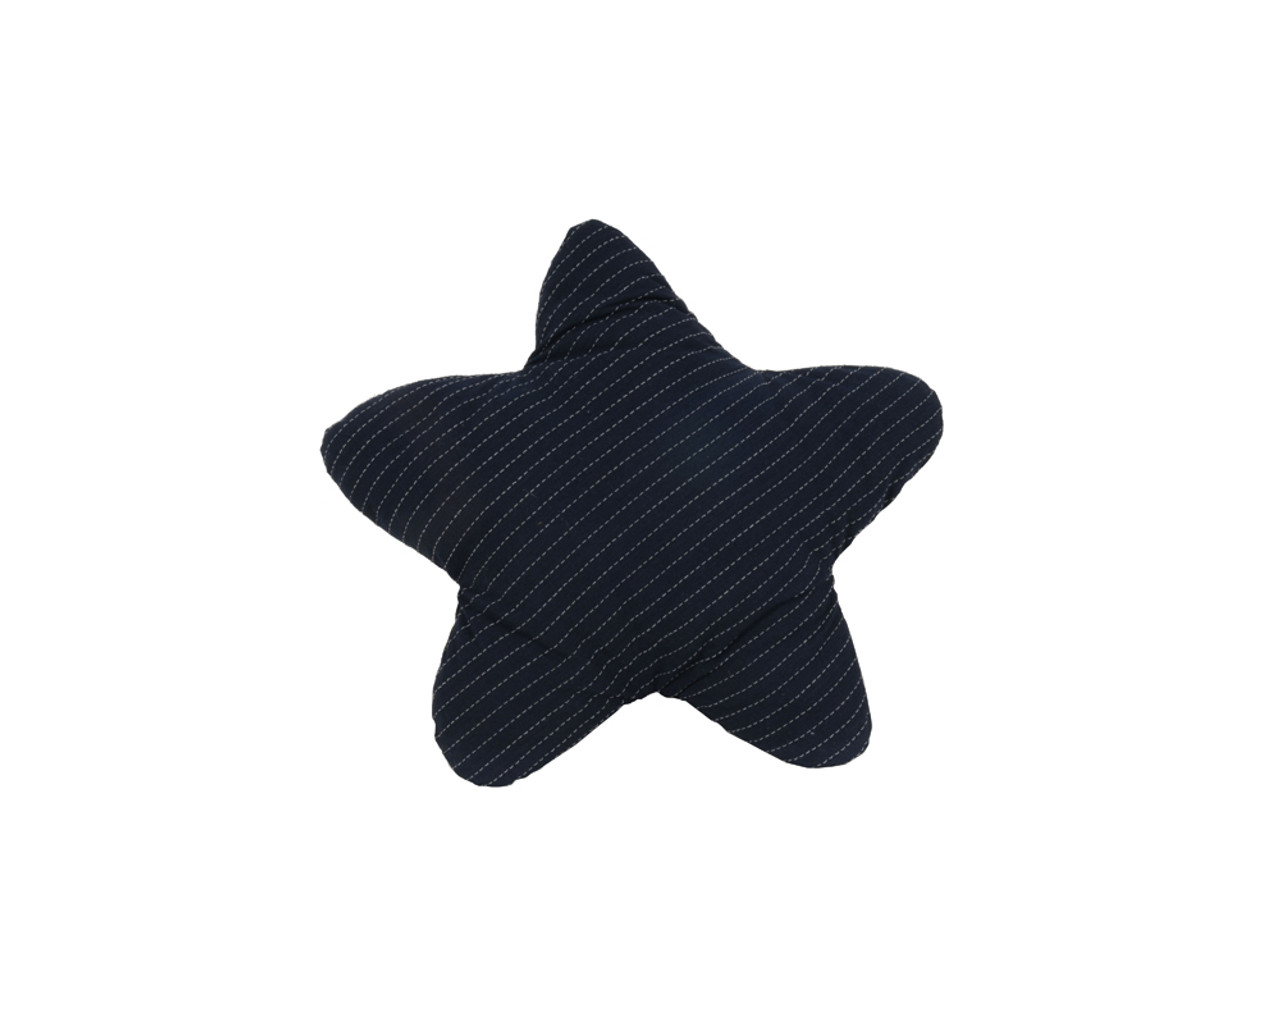 Set of 1 Blue Star and 1 White Star Pillows